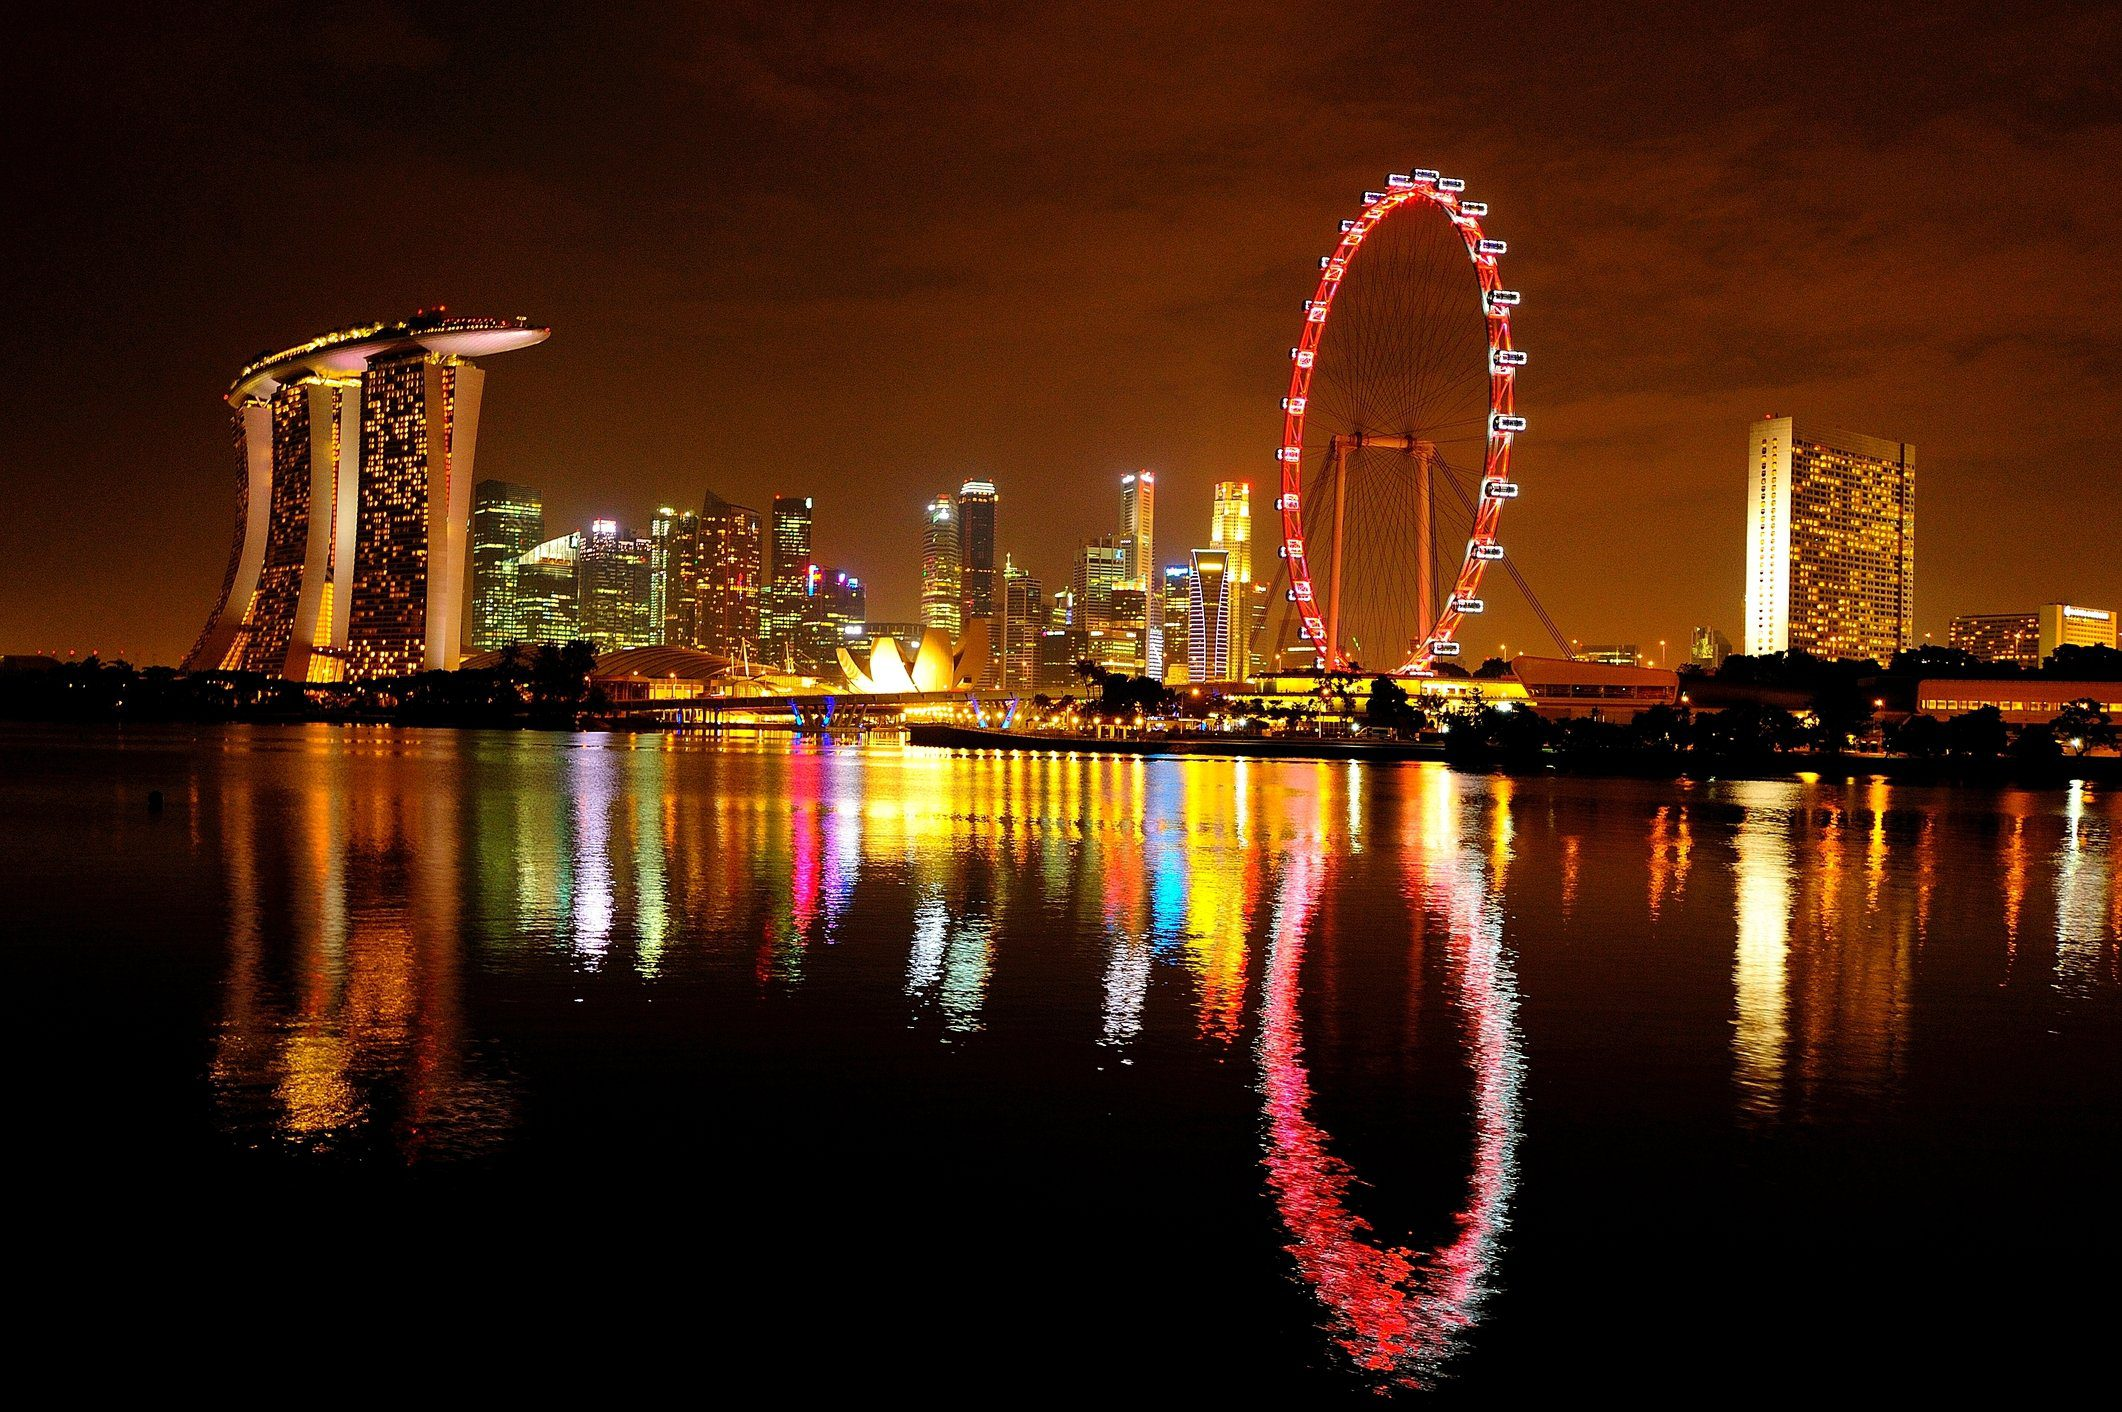 The Singapore Flyer, a giant Ferris wheel in Singapore